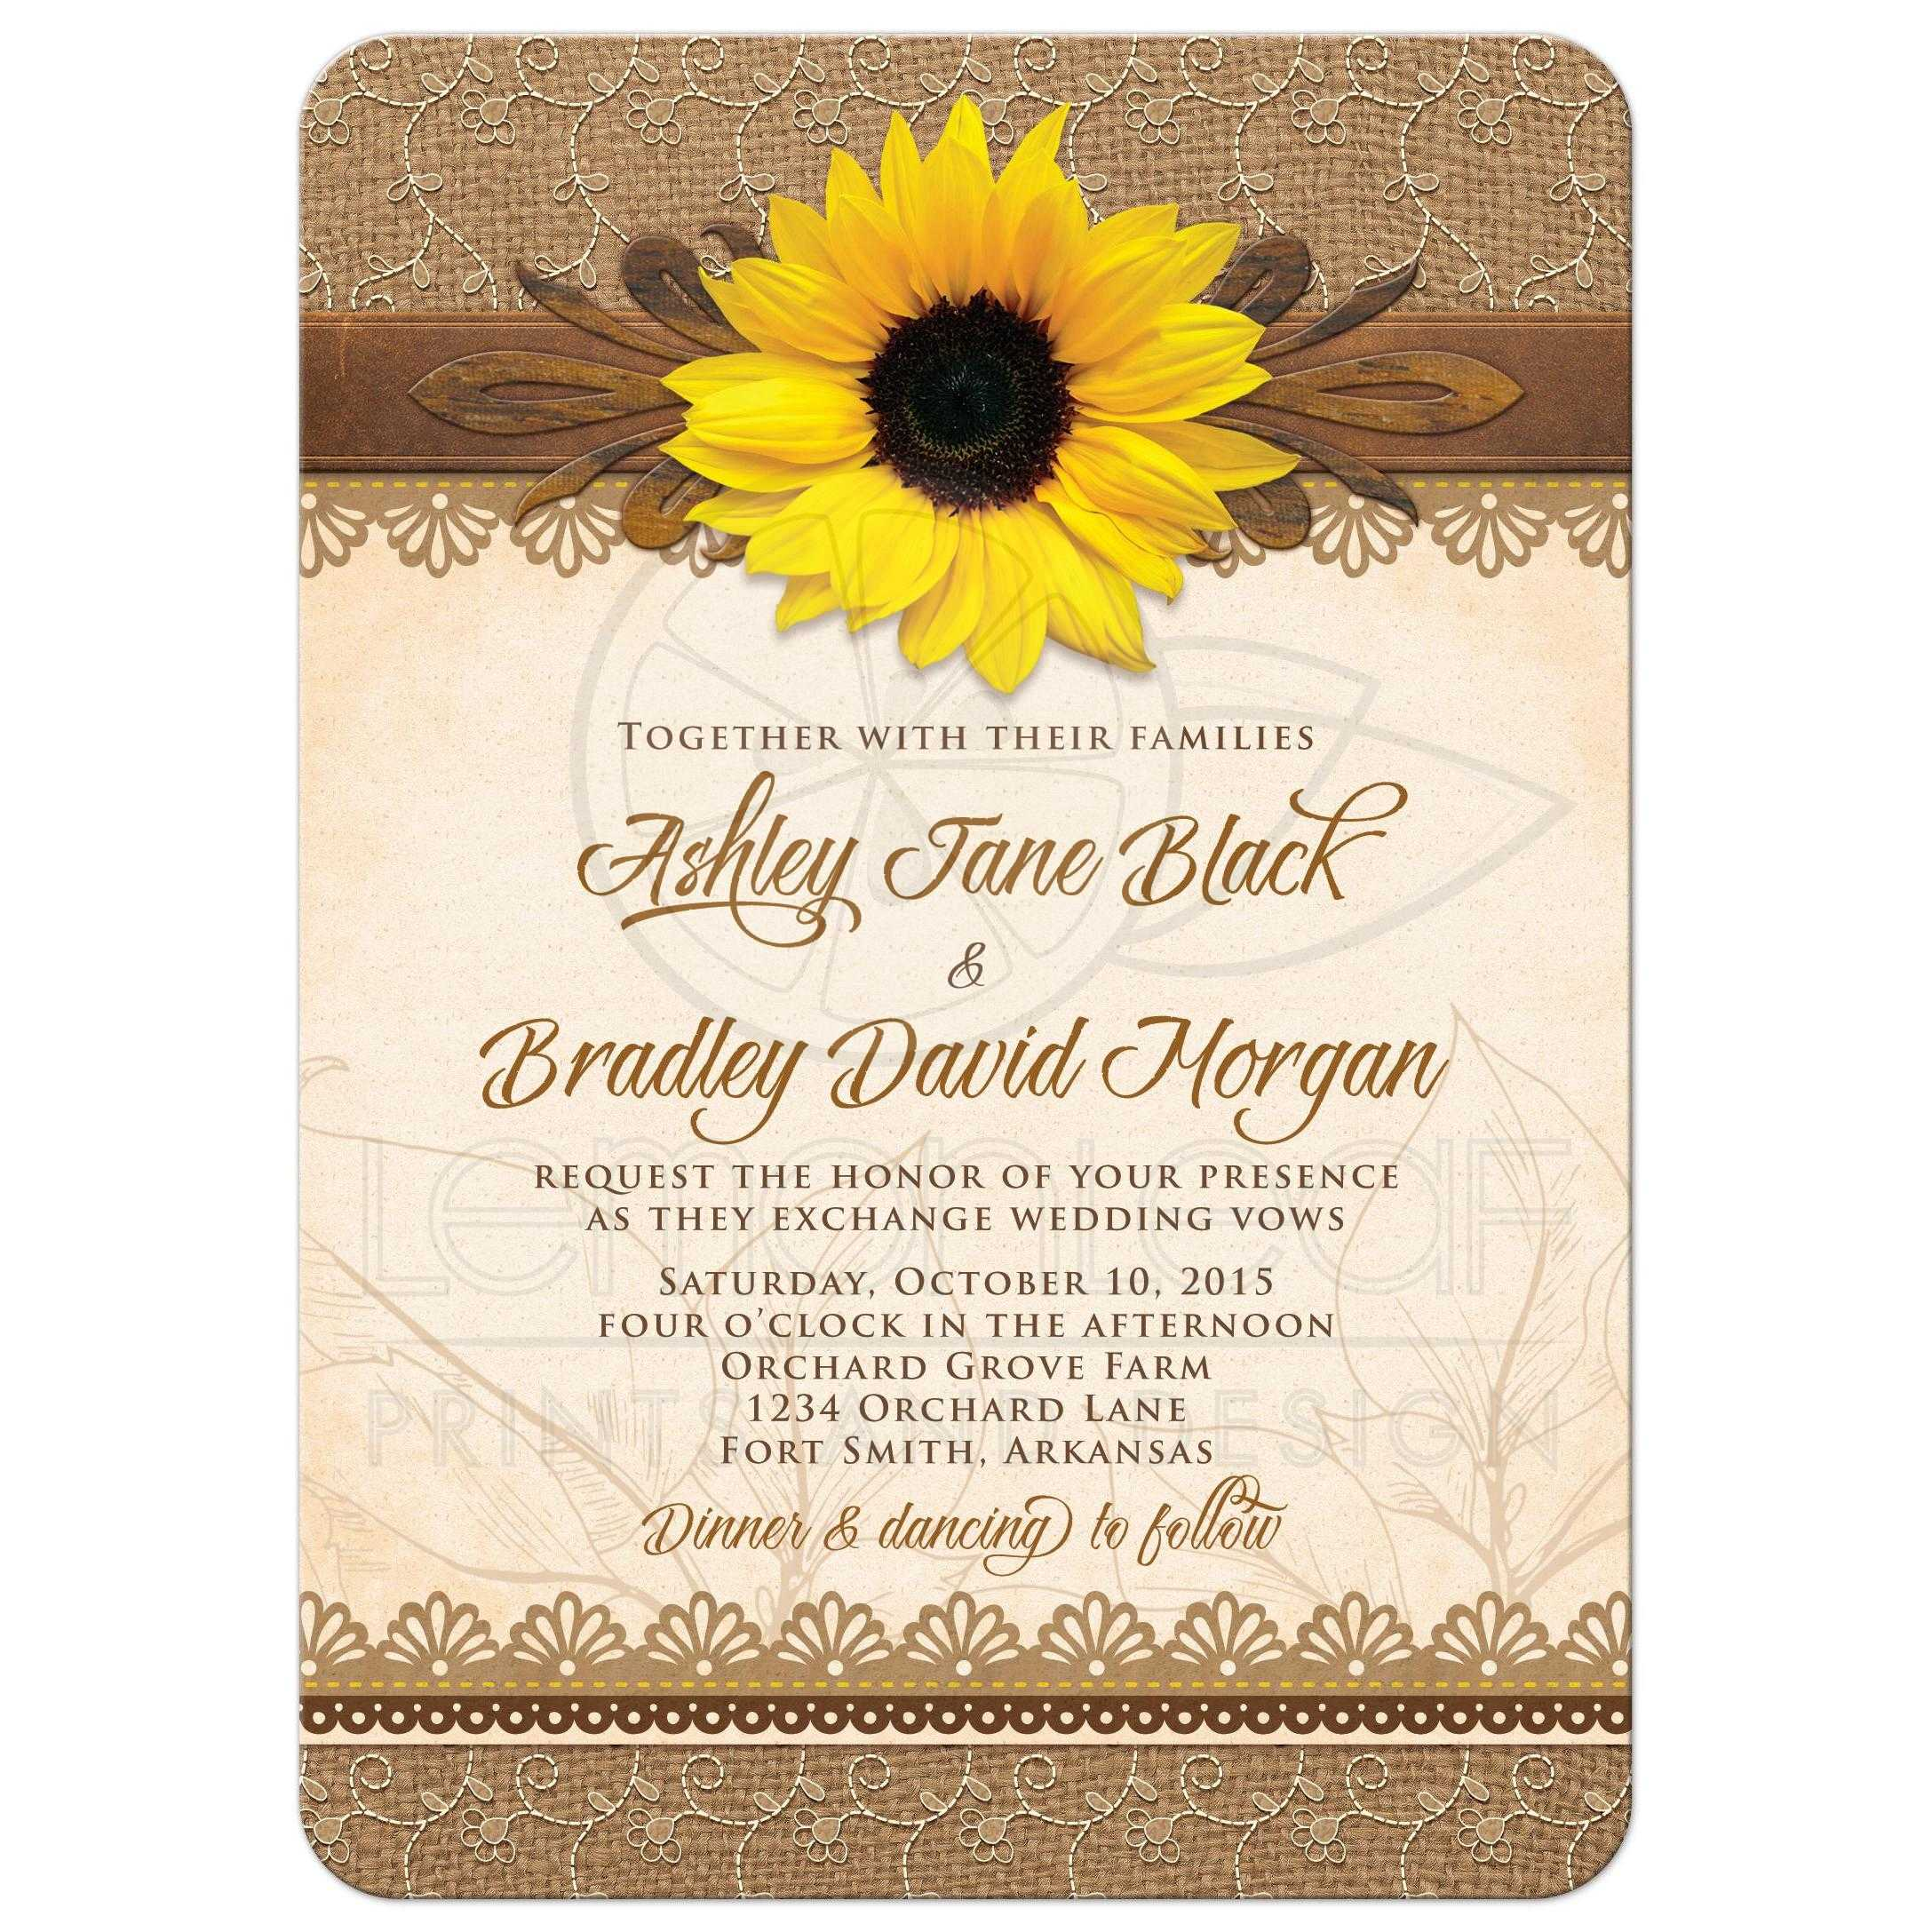 Sunflower Wedding Invitations Kits for beautiful invitations layout